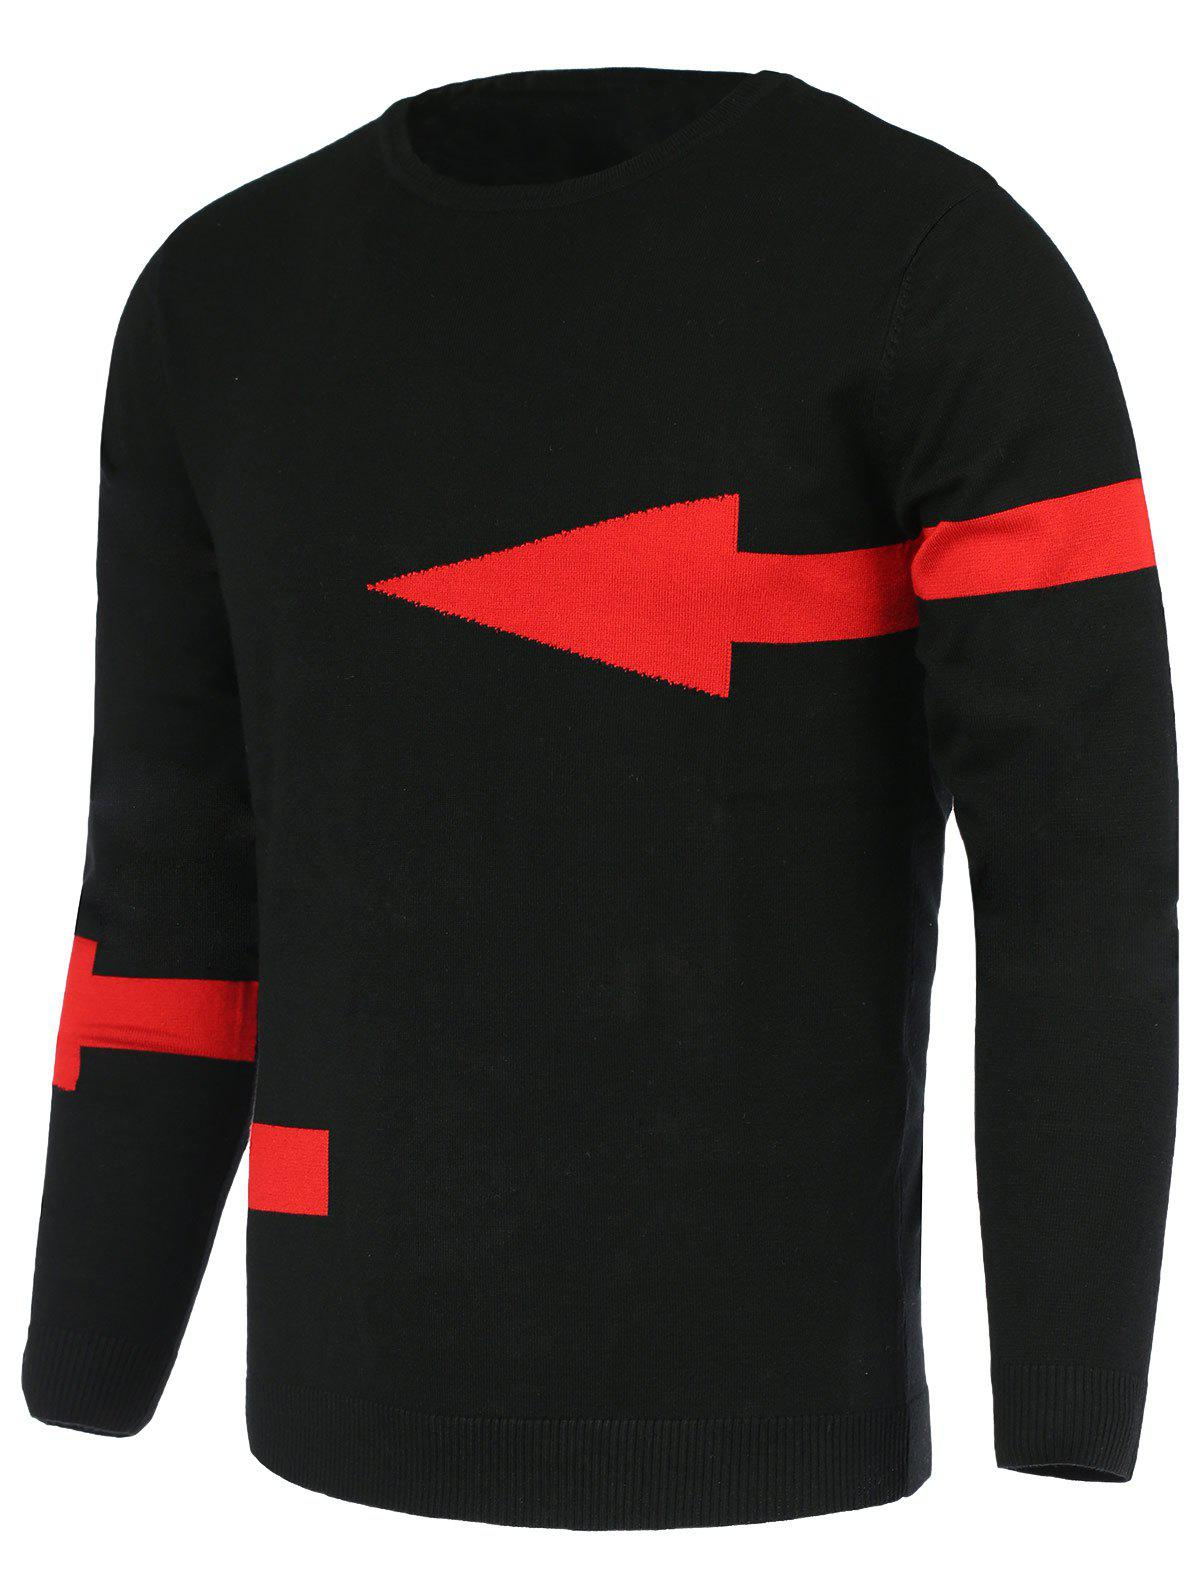 Cheap Solid Color Arrows Pattern Slimming Round Neck Long Sleeves Sweater For Men